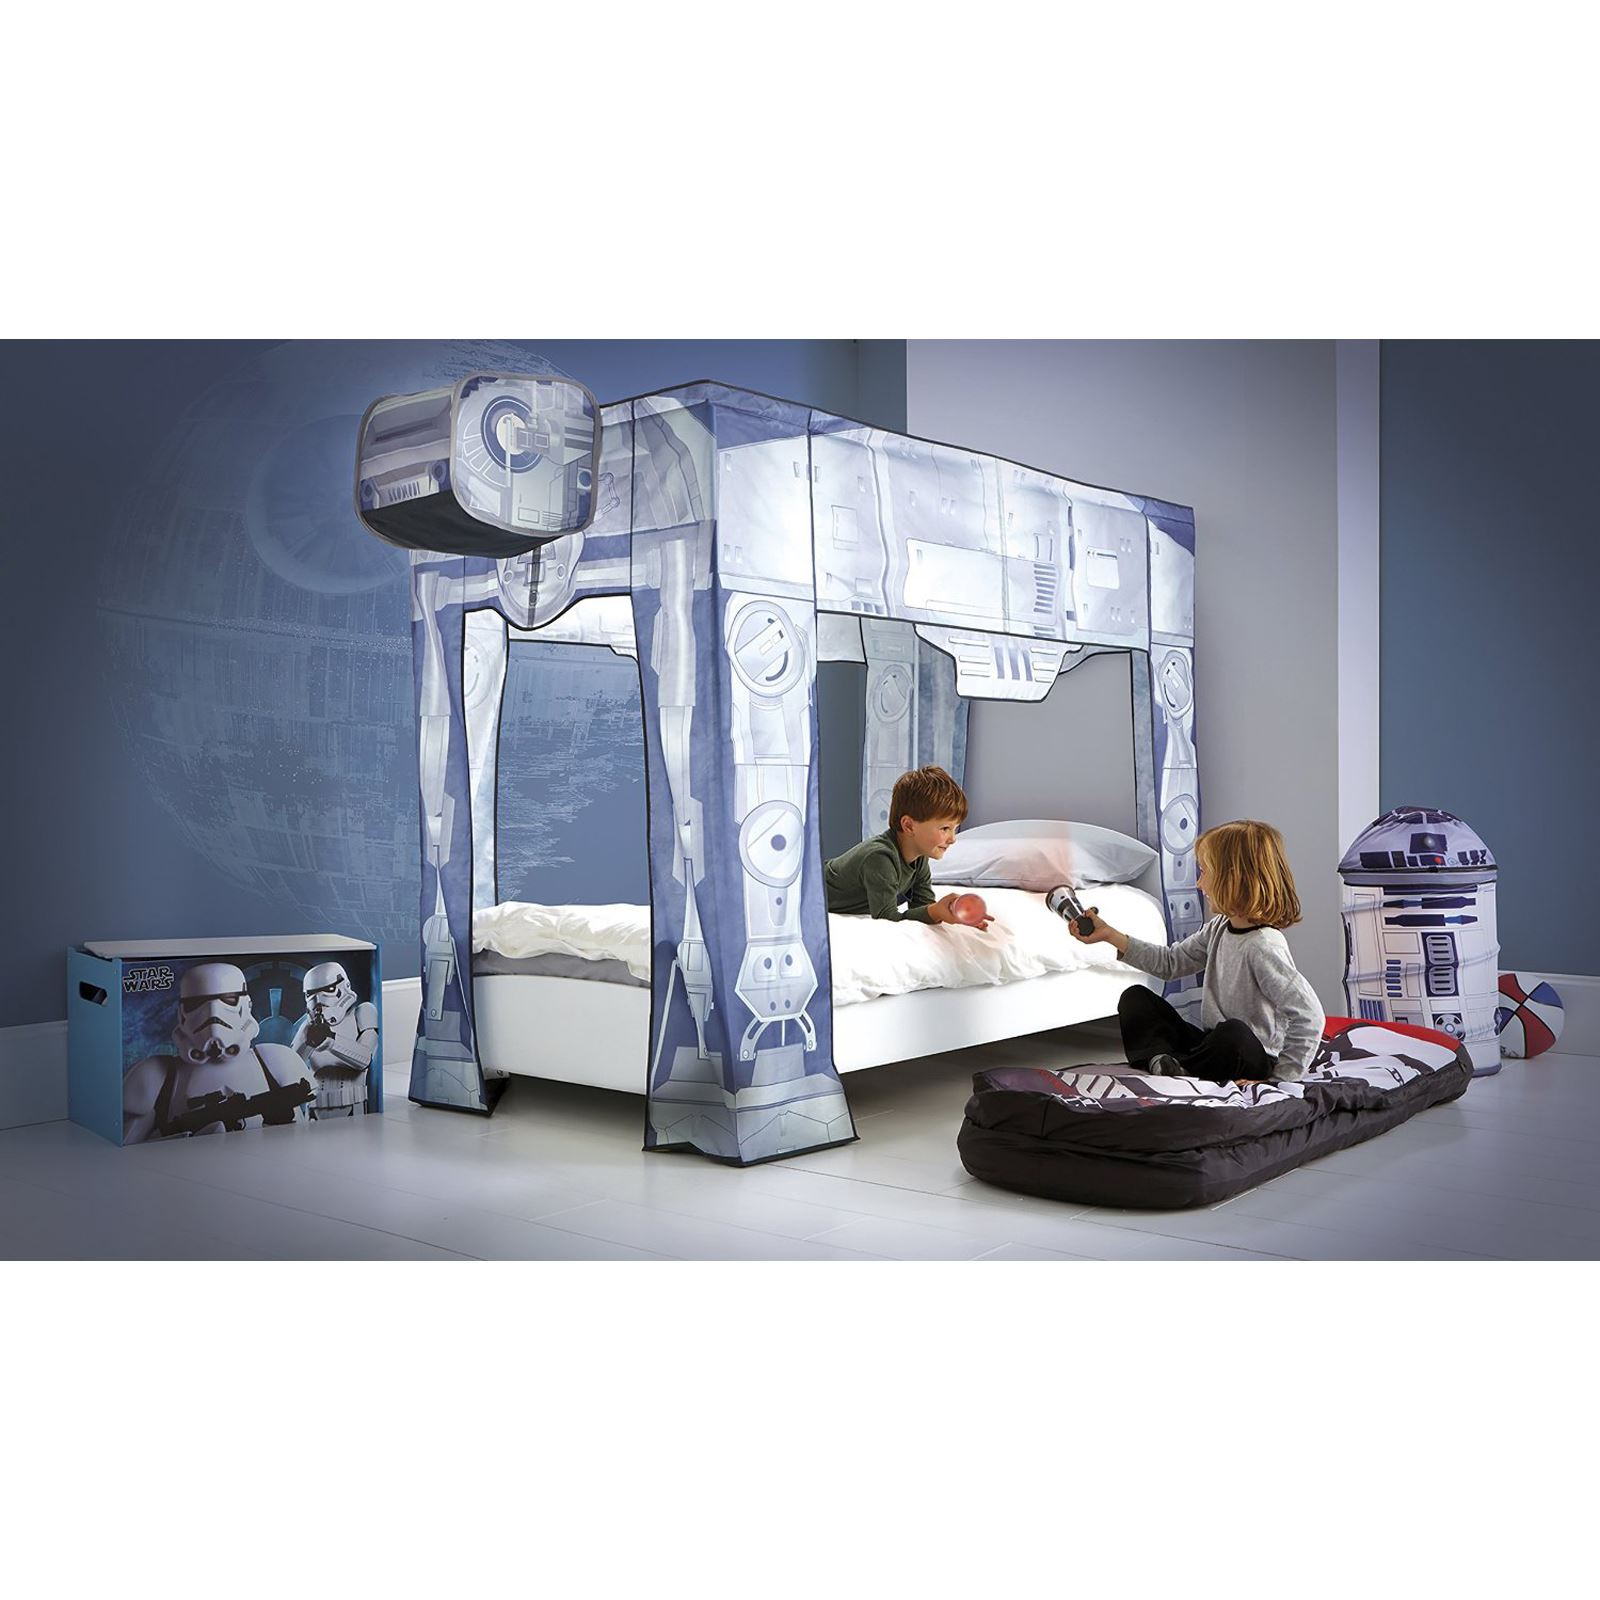 star wars bei bei einzelbett baldachin neu offiziell ebay. Black Bedroom Furniture Sets. Home Design Ideas